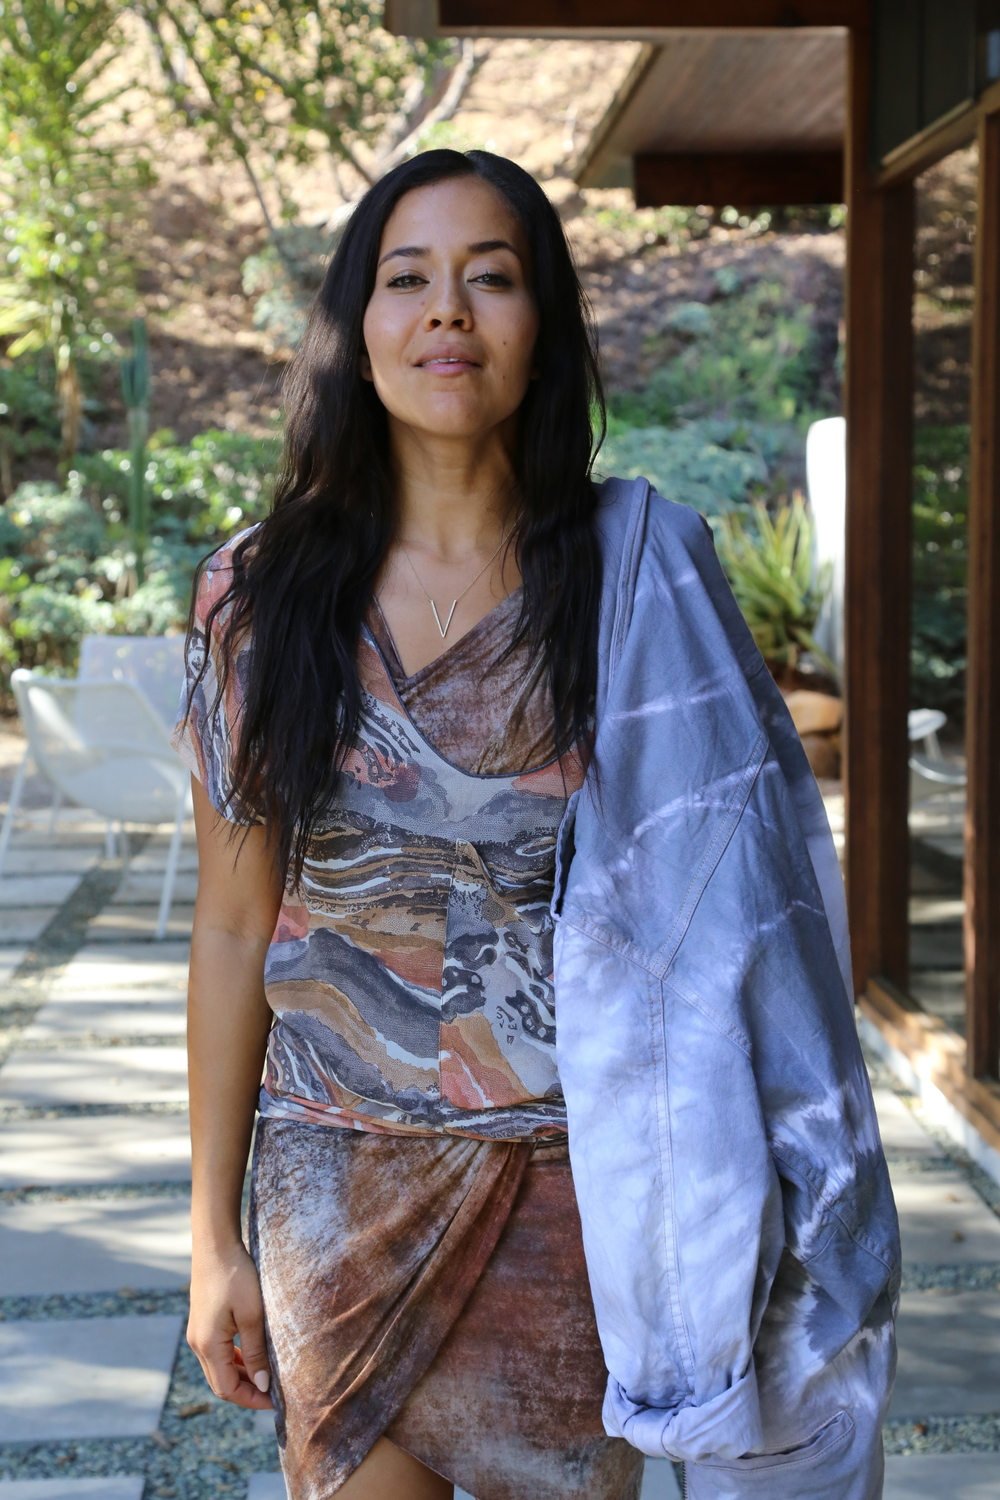 isabel-marant-jacket-helmut-lang-dress-marble-desert-mix-los-angeles.jpg